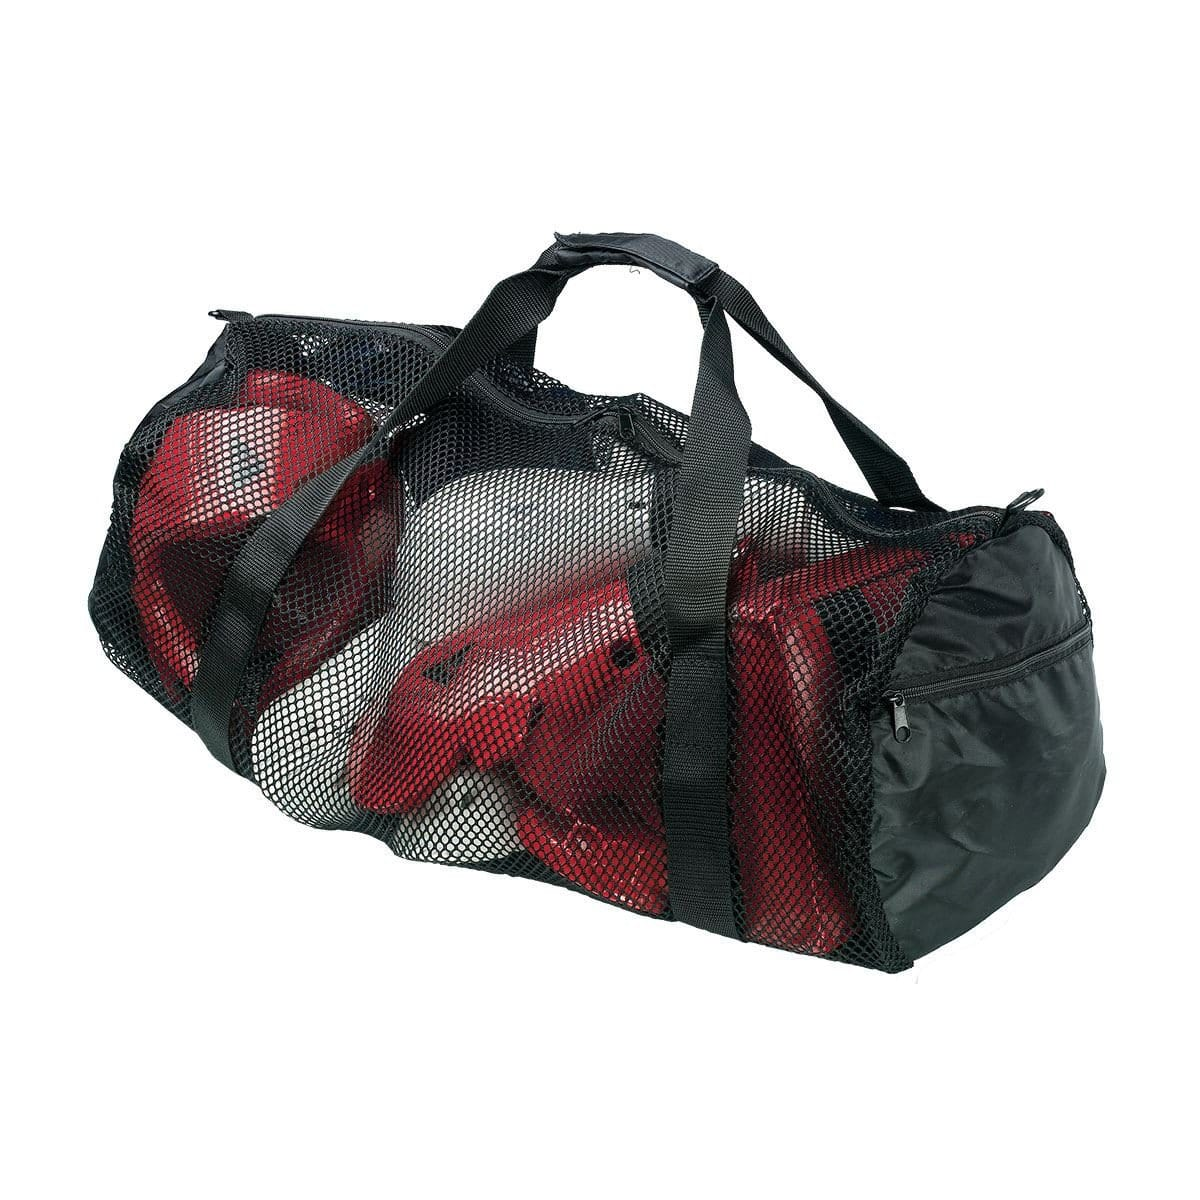 Mesh Martial Arts Sport Sparring Gear Bag by Century - BlackBeltShop